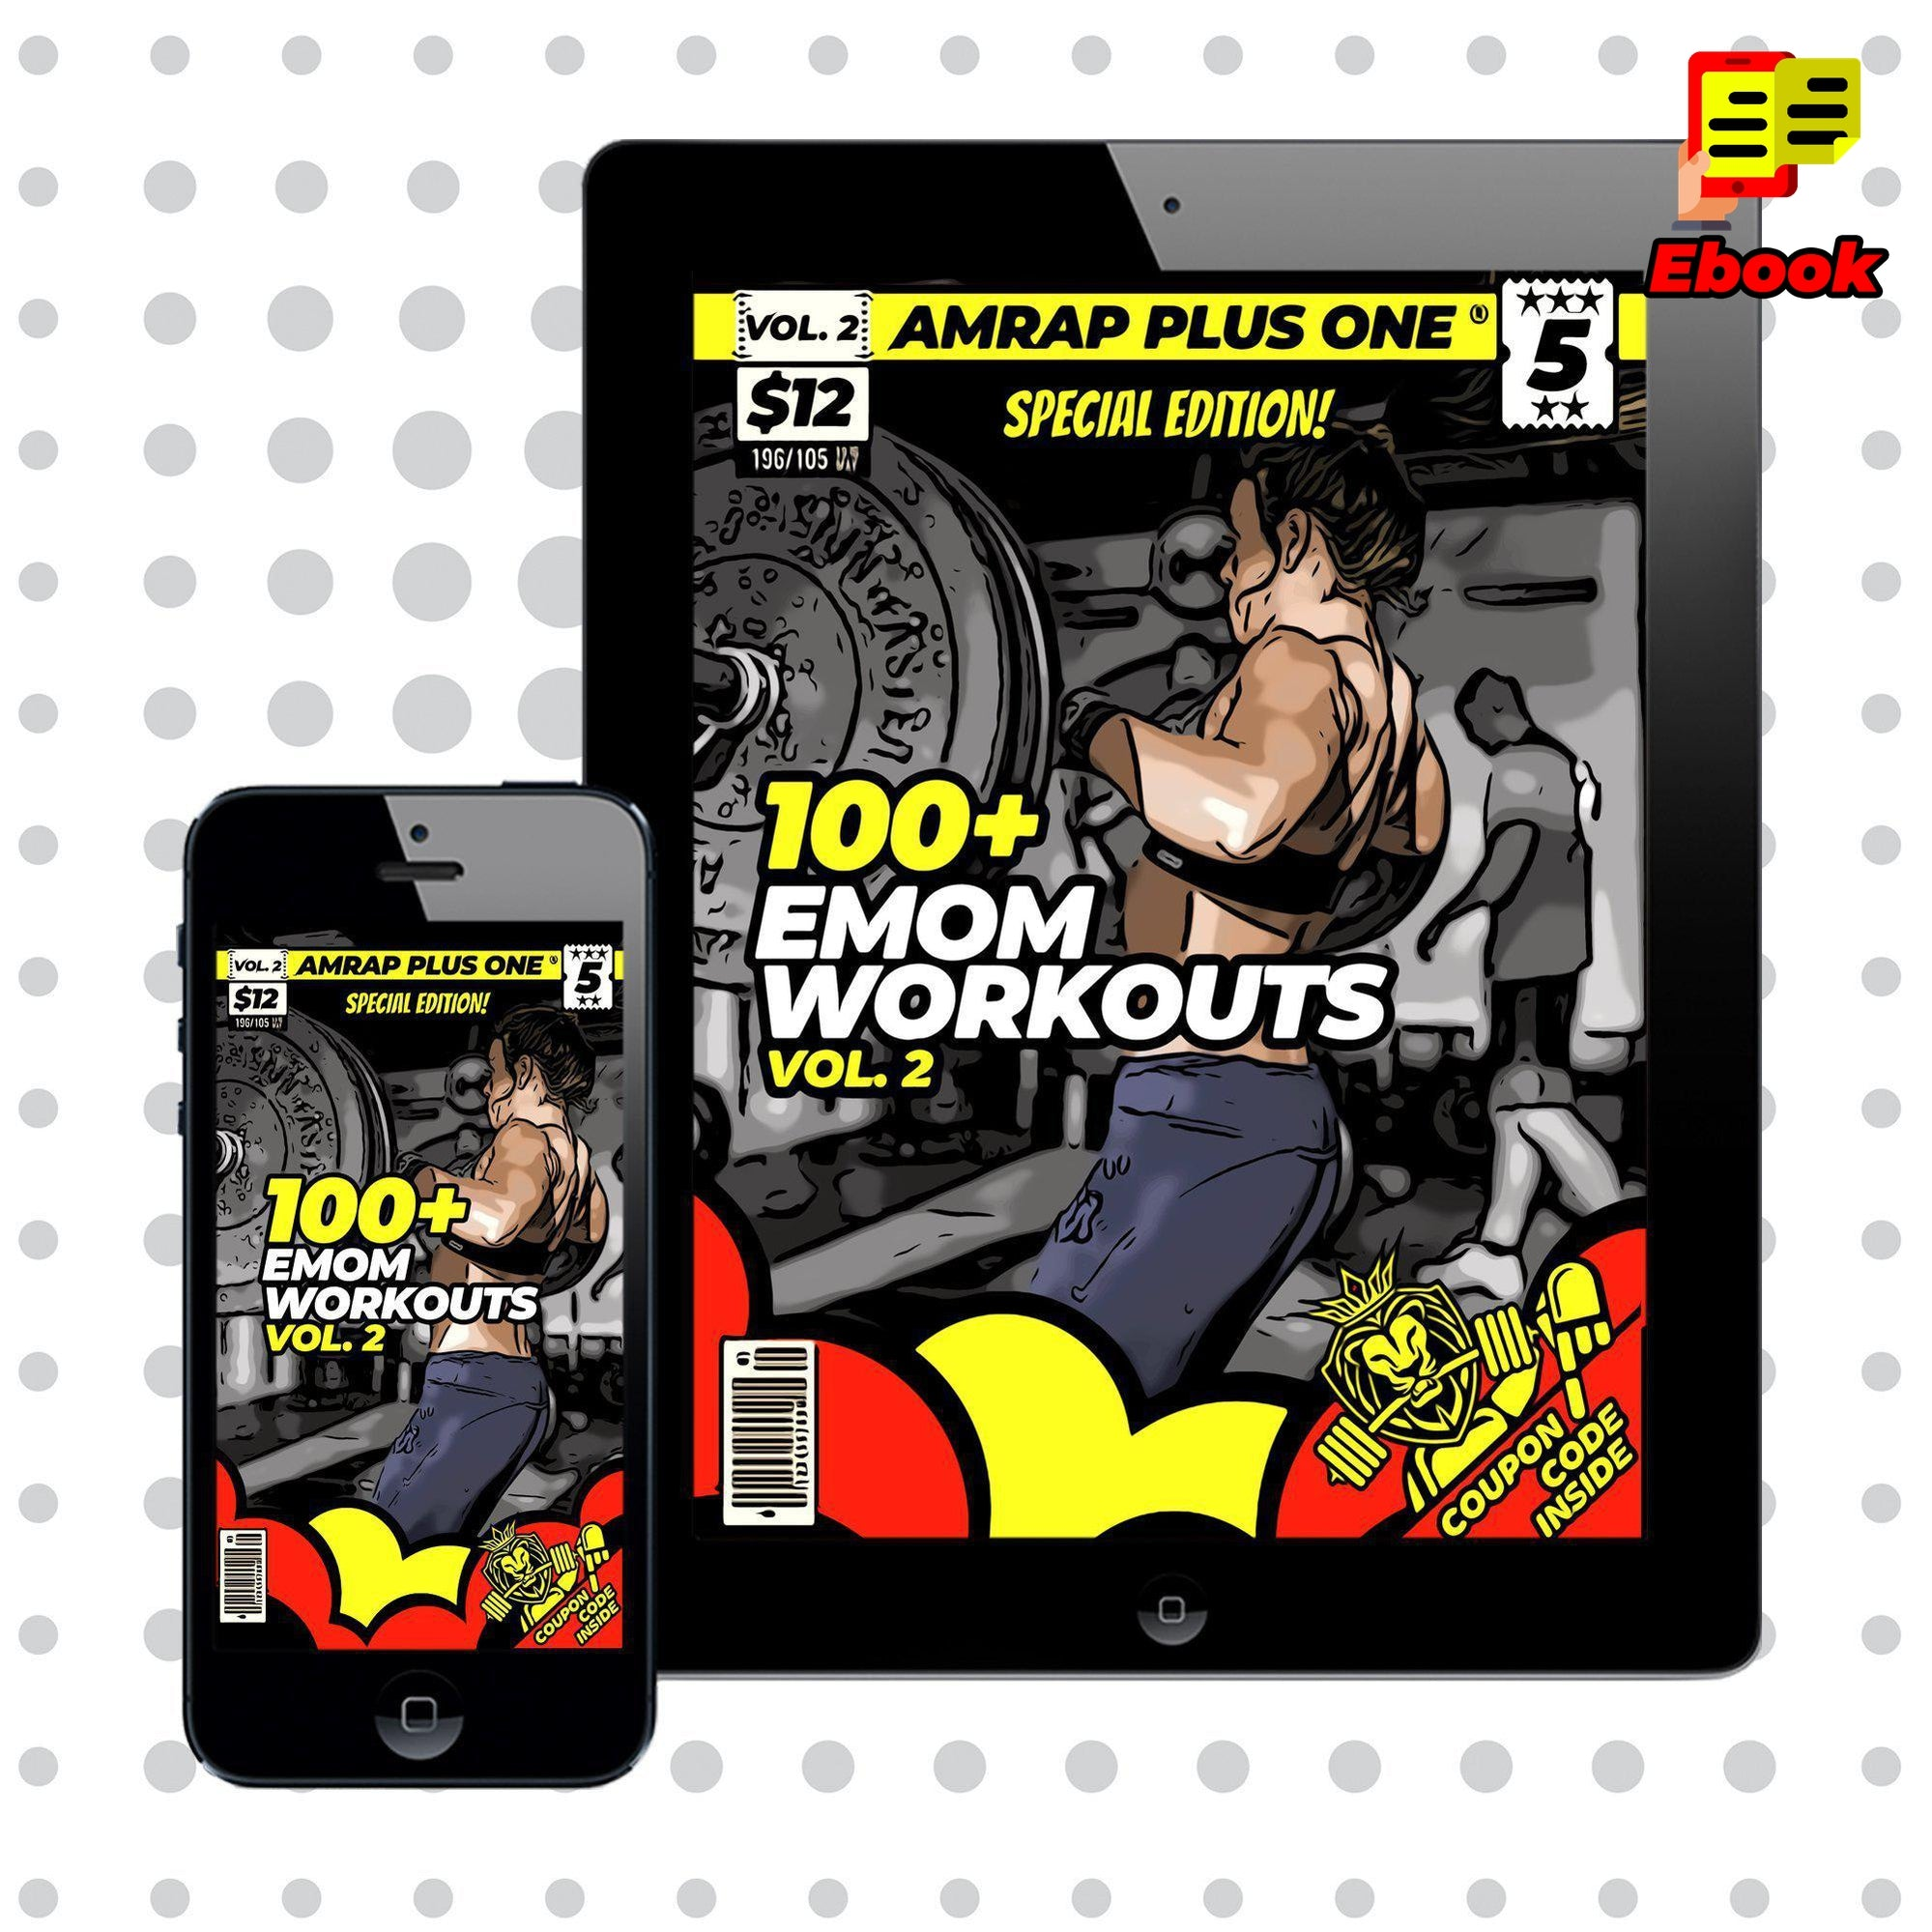 100+ EMOM Workouts Vol. 2 - AMRAP Plus One